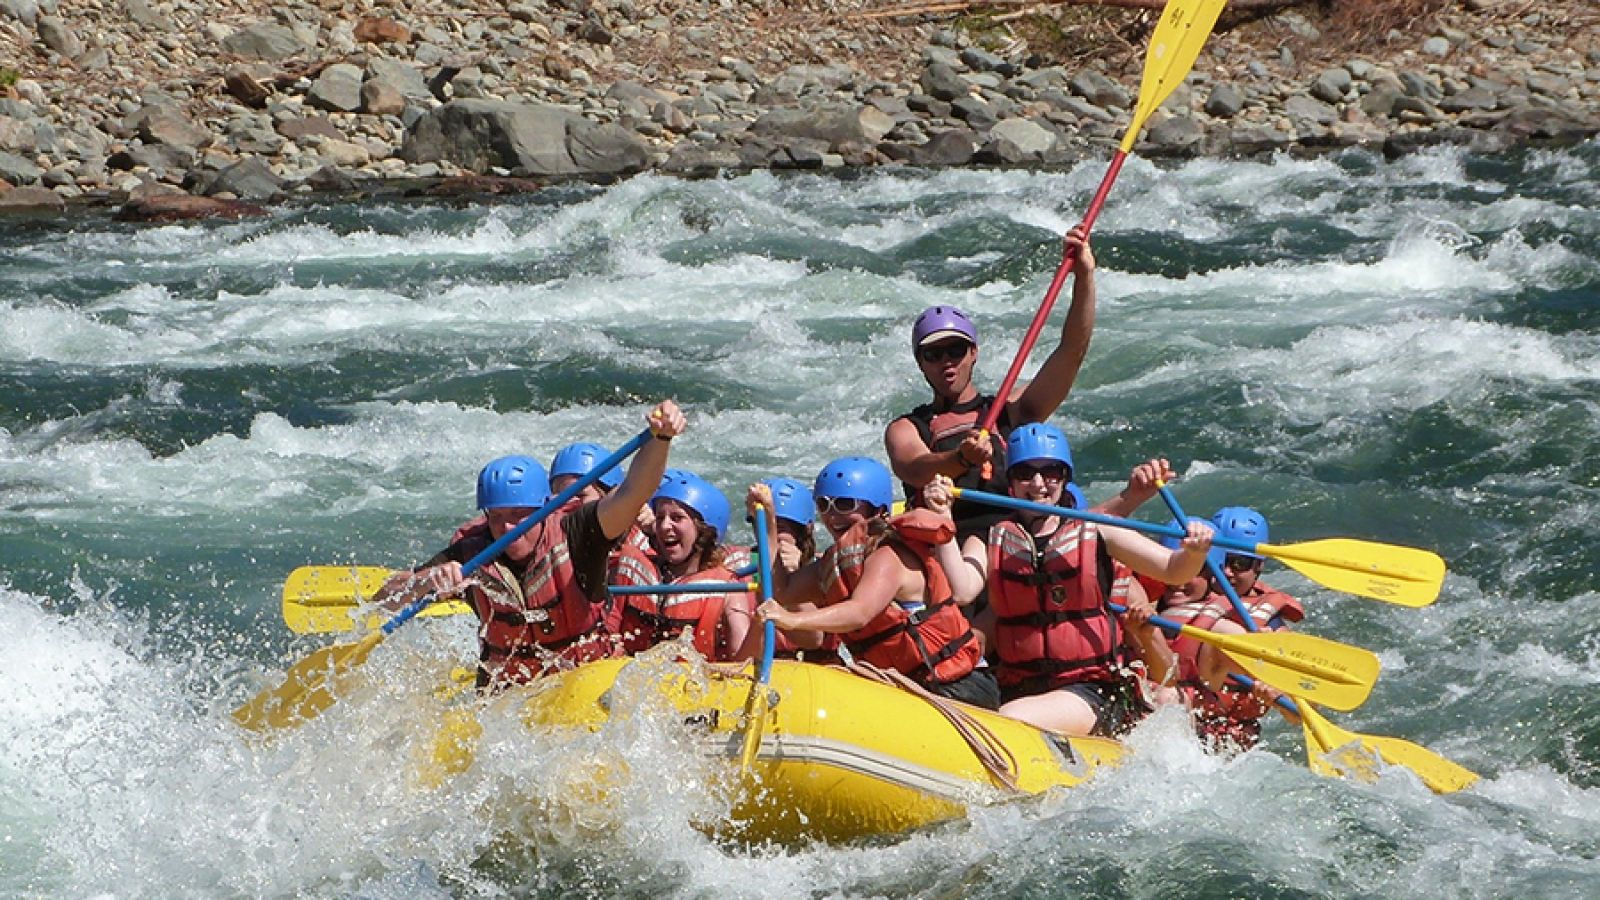 Wilderness whitewater rafting.